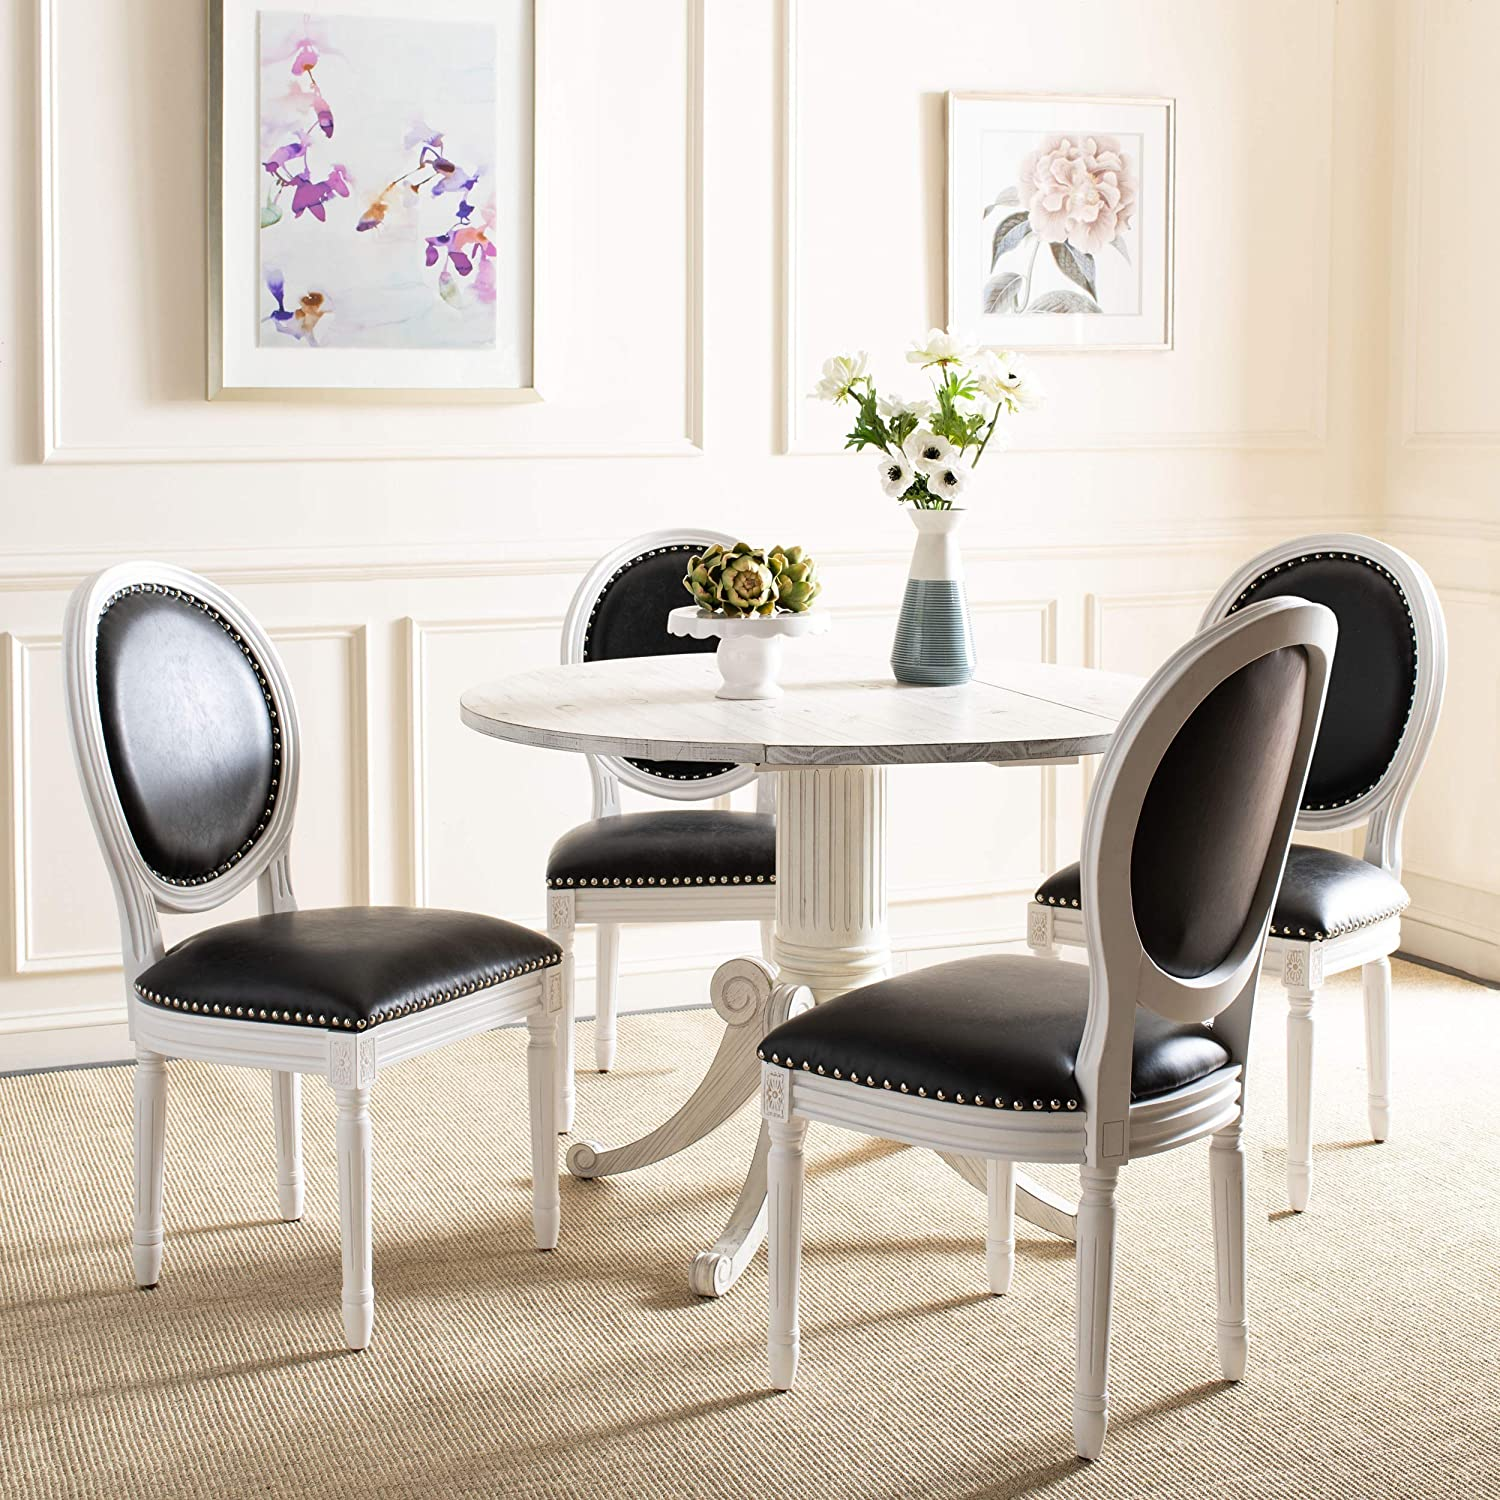 Best Overall: Safavieh Home Collection Linen Oval Side Chair.